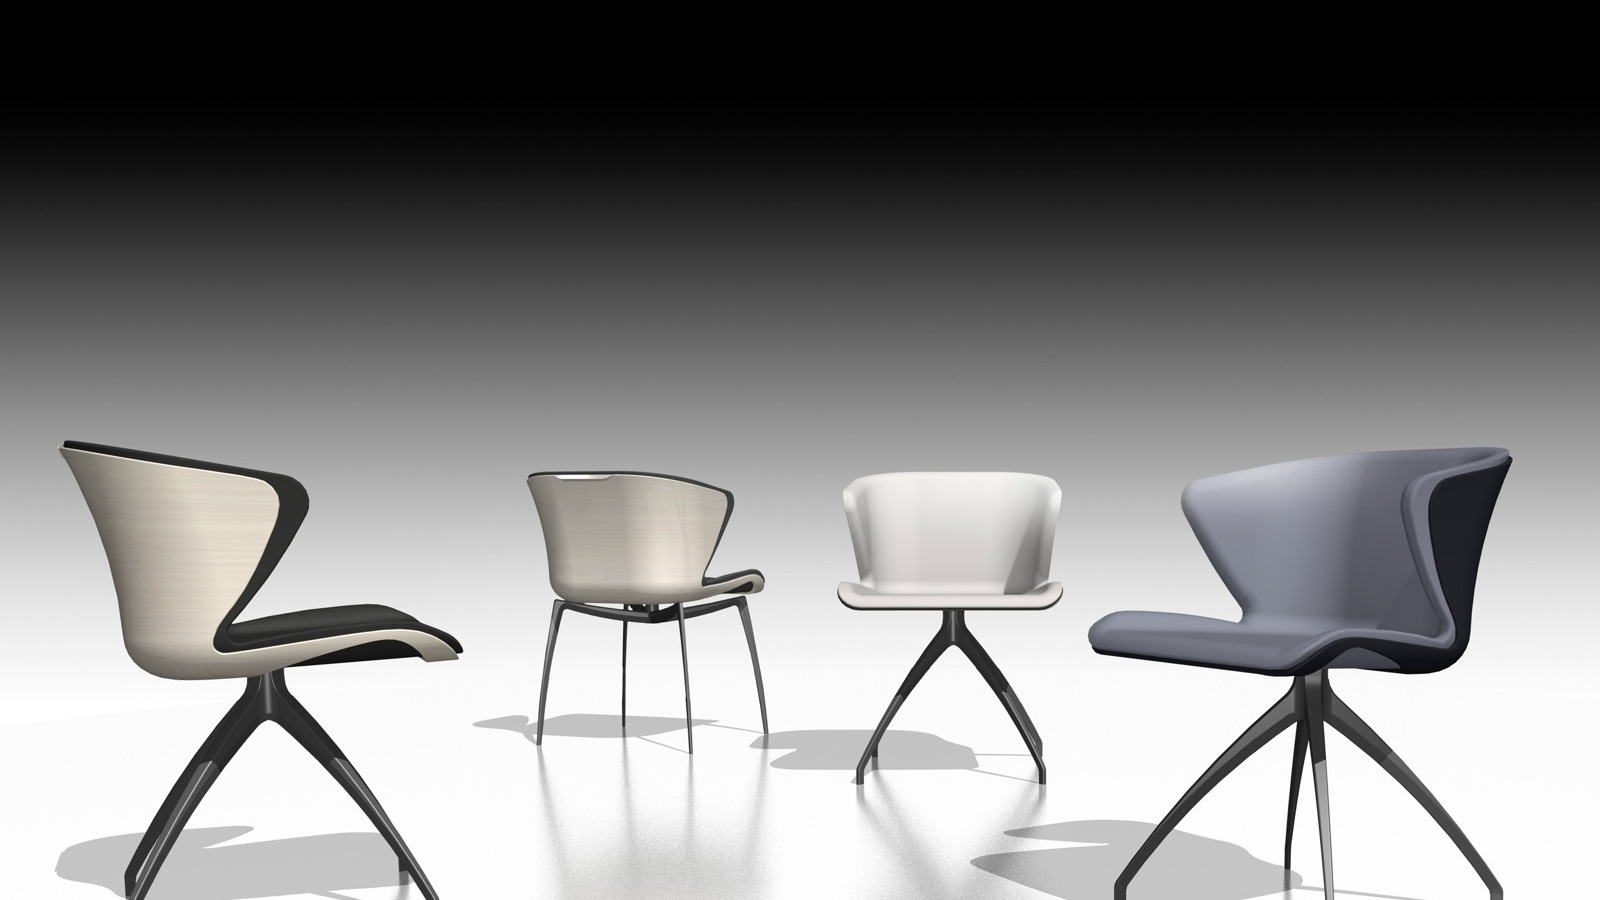 Mercedes Benz Style furniture collection.